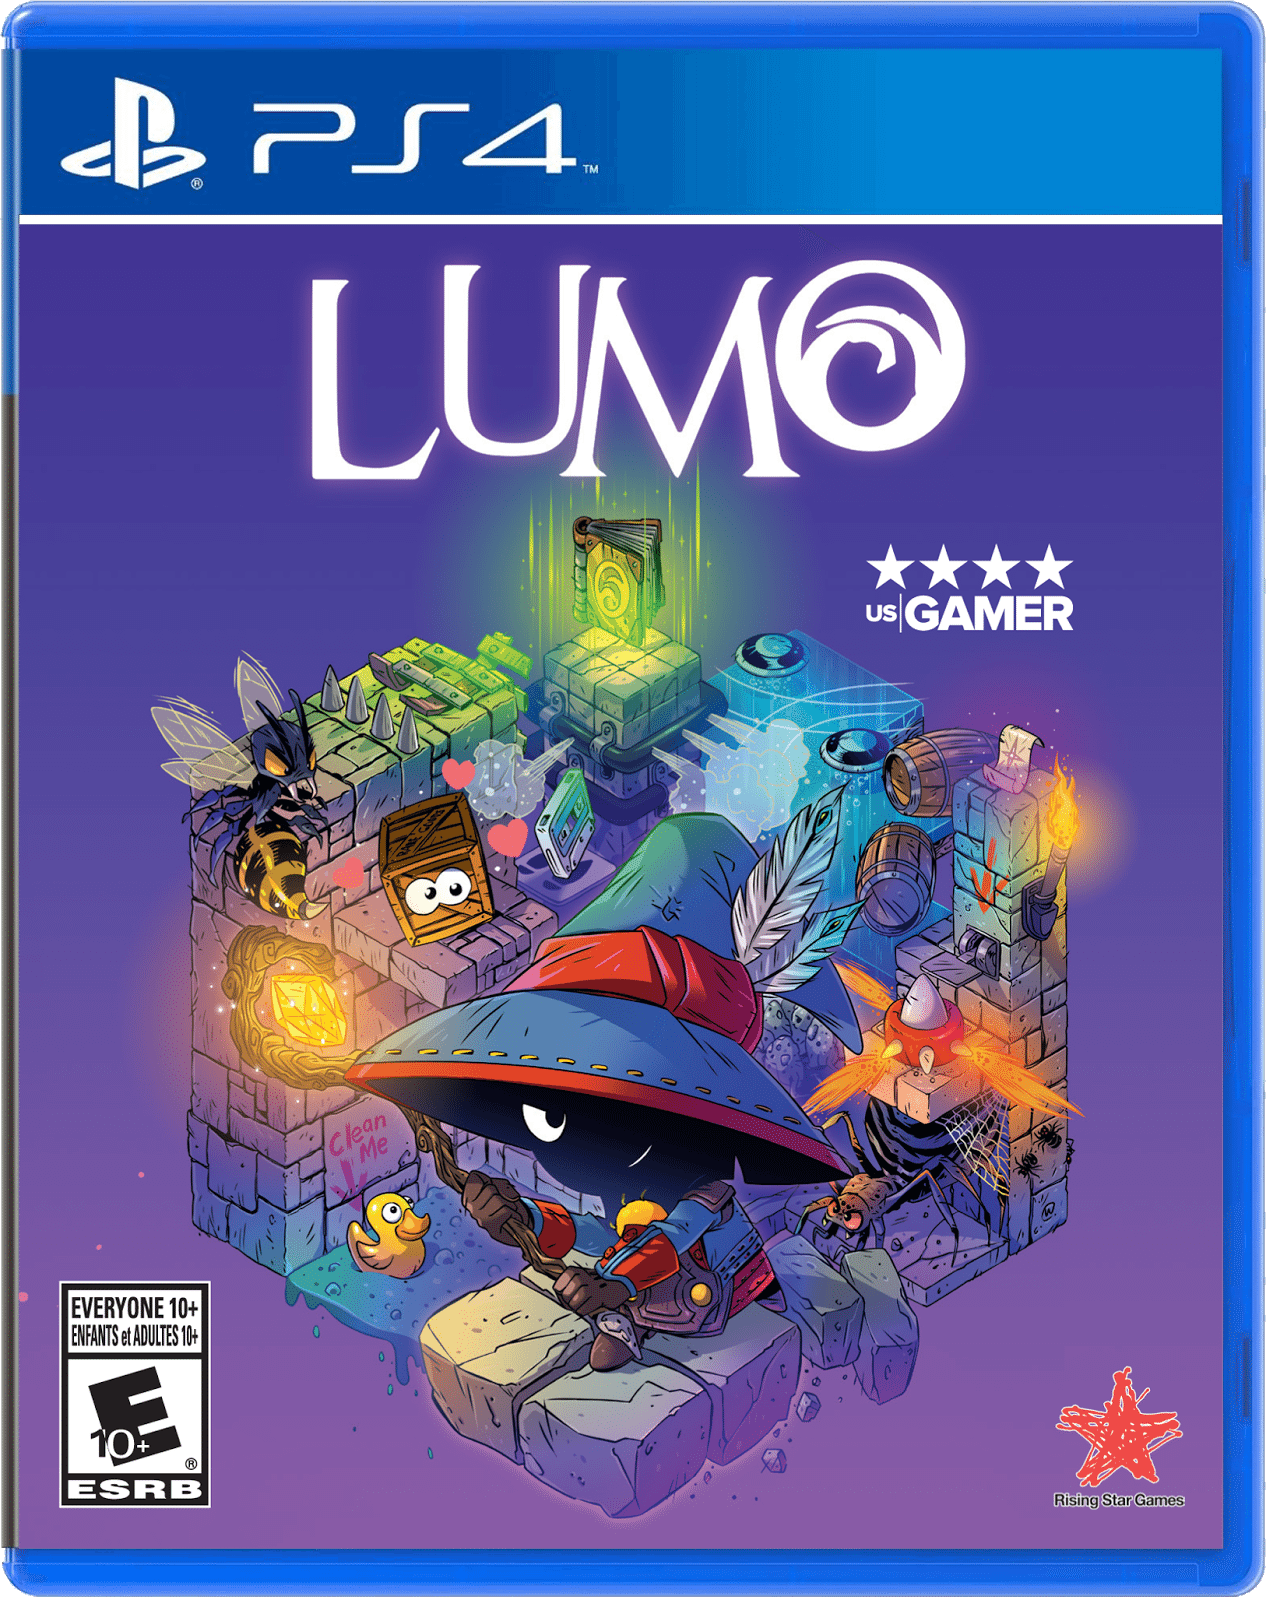 LUMO Now Available at Retail for PS4